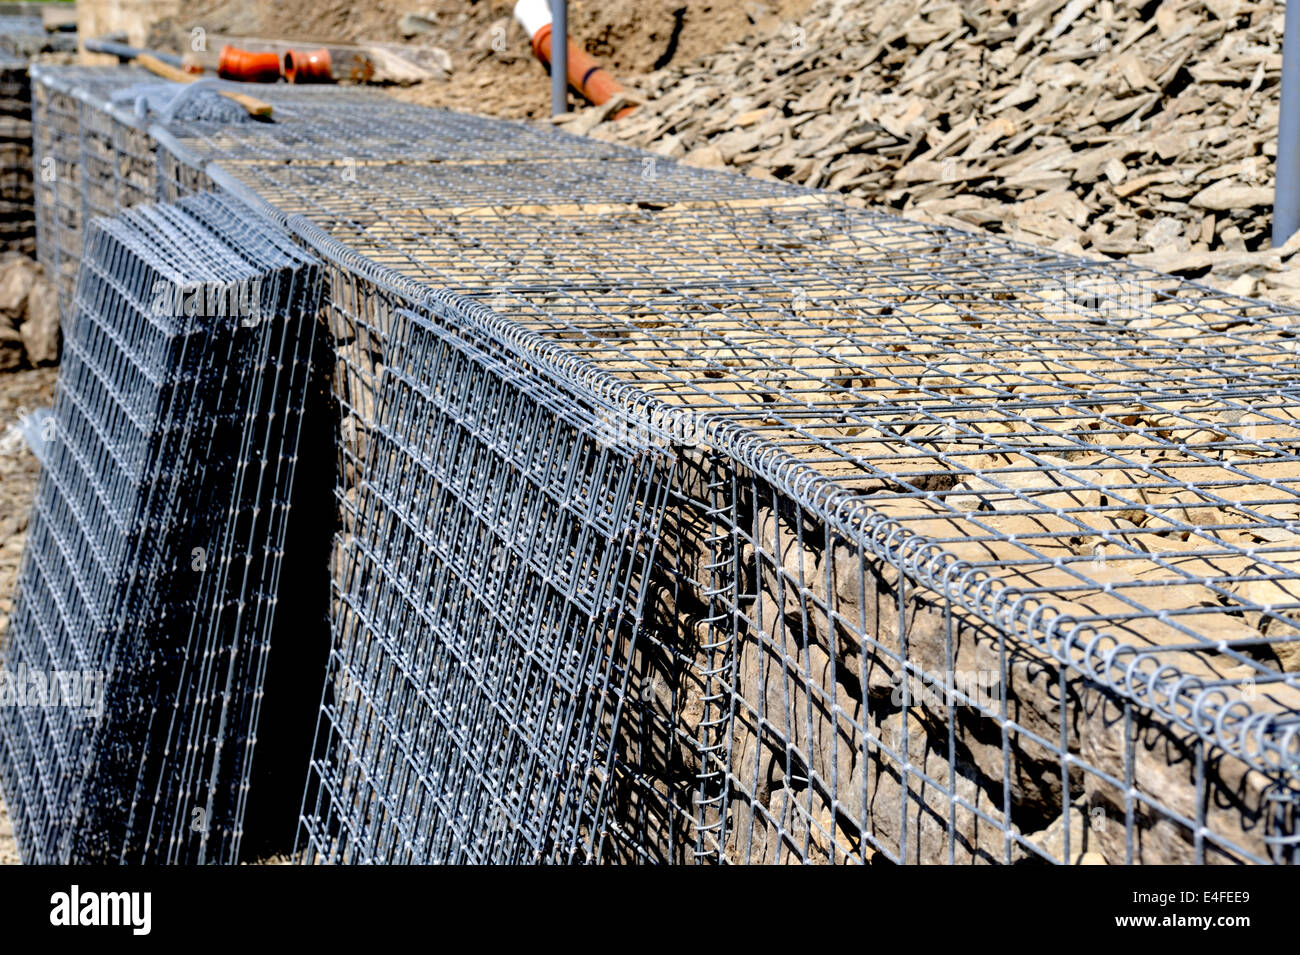 Detail of galvanized wire mesh babion being filled with rock for slope stabilization and spare basket sides,  Aberporth, - Stock Image